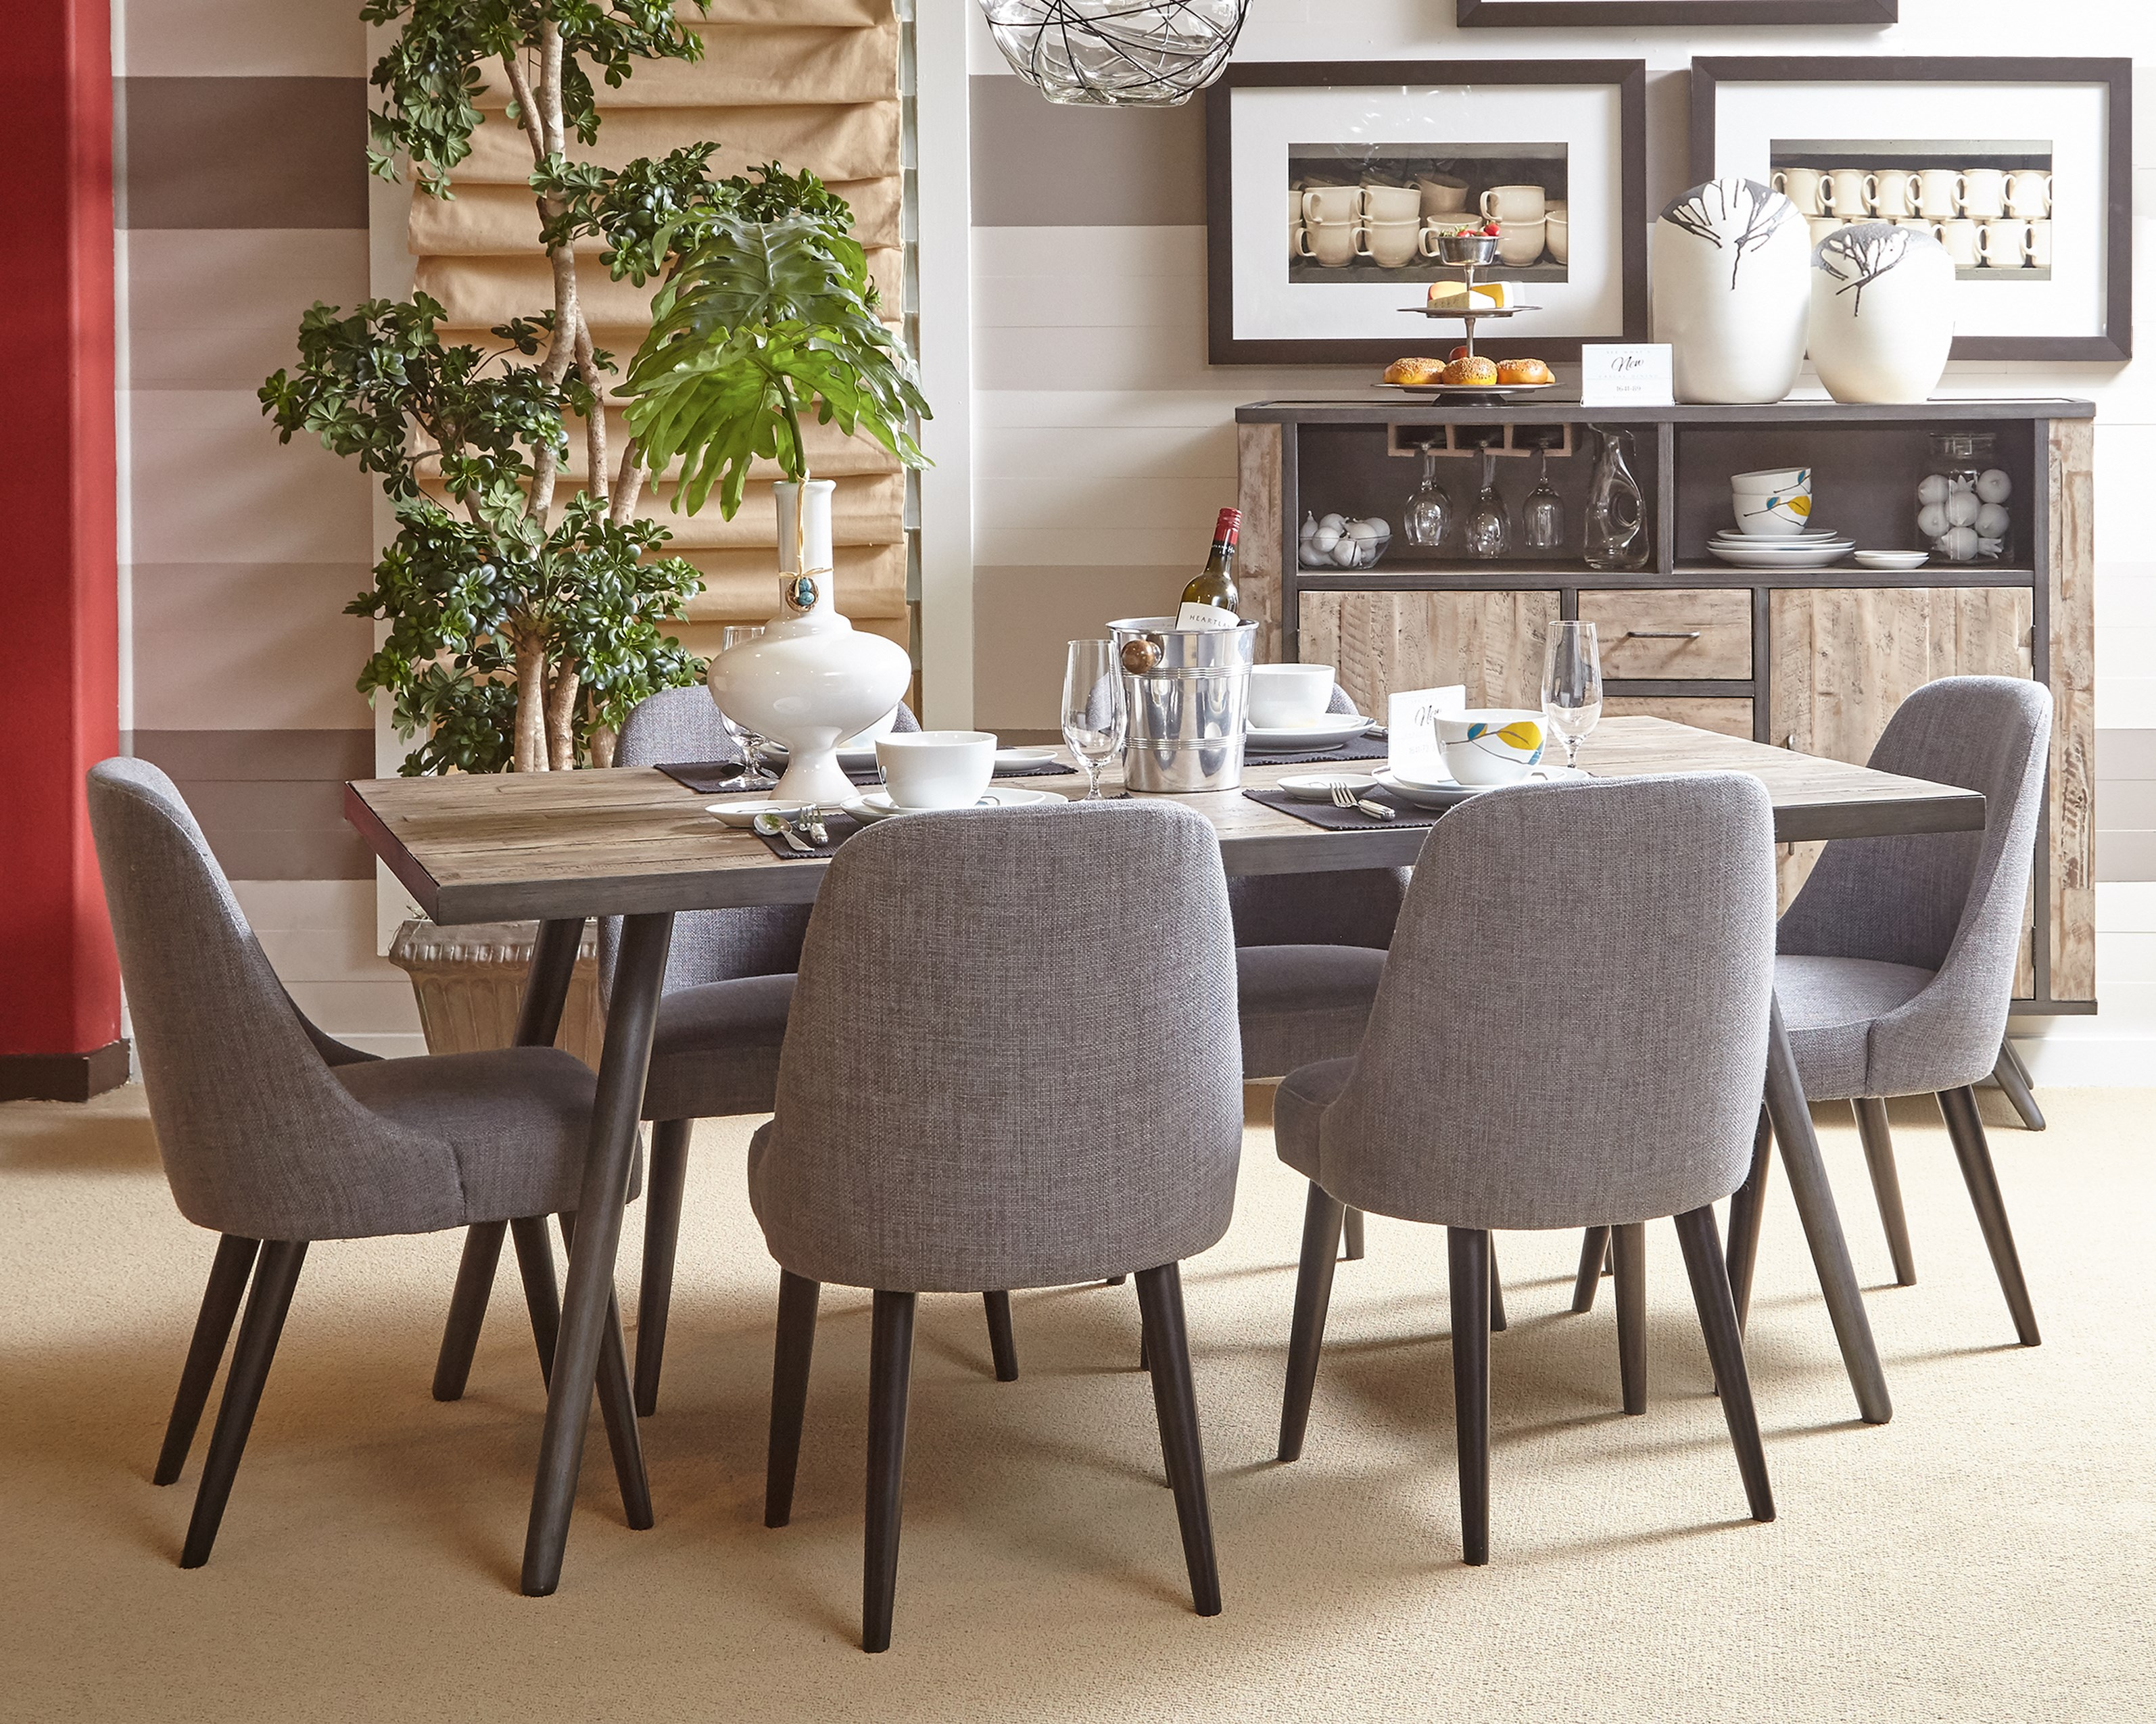 Belfort essentials american retrospective dining table and for Dining room tables american furniture warehouse